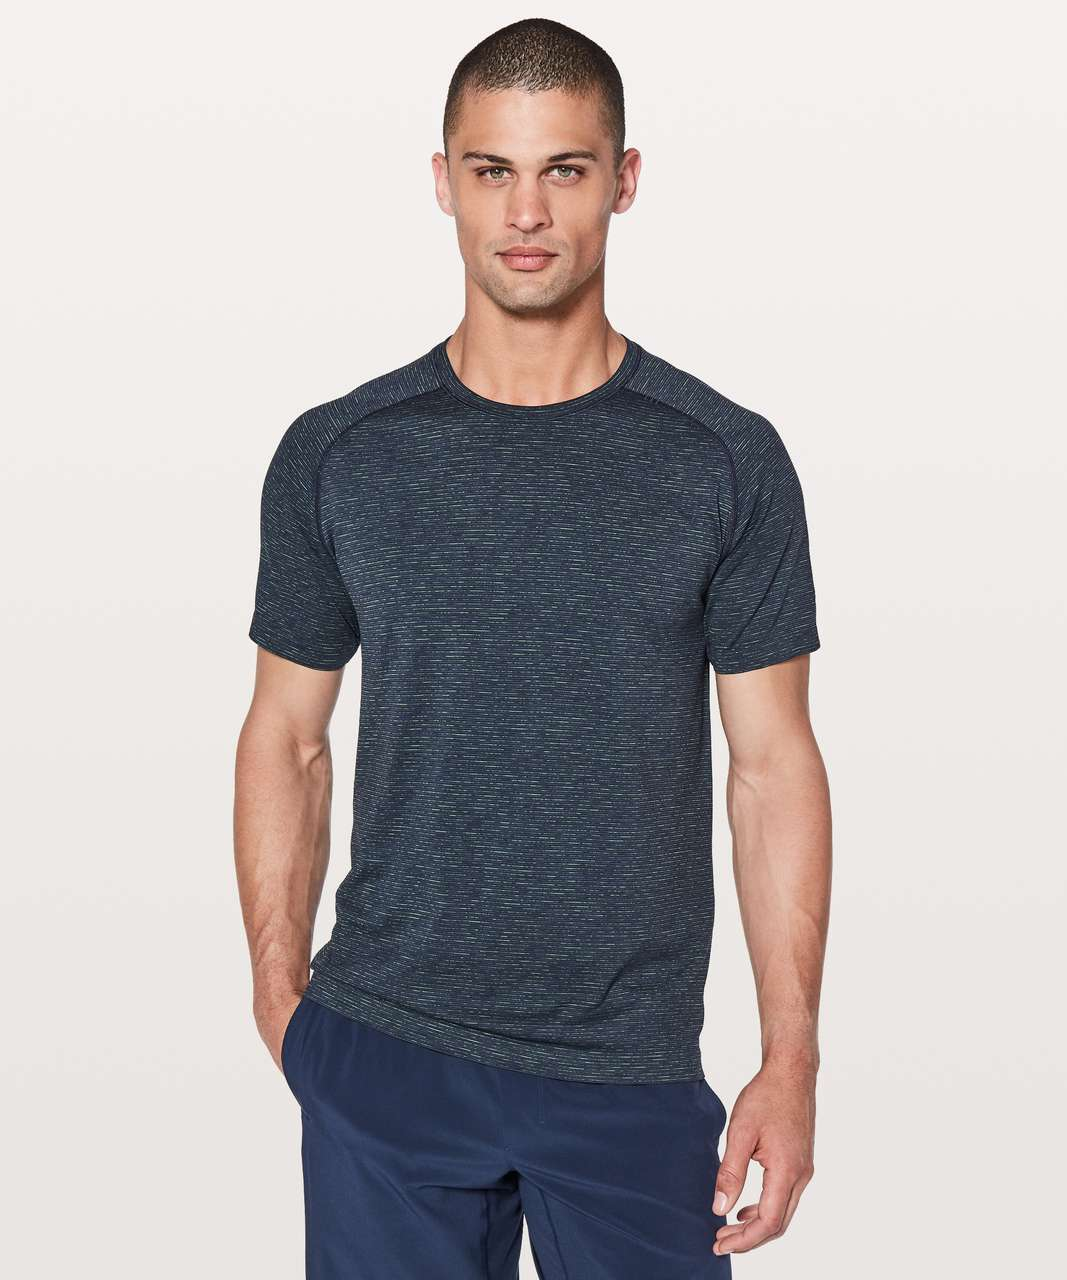 Lululemon Metal Vent Tech Short Sleeve - Nautical Navy / Lime / Dark Blue / Black